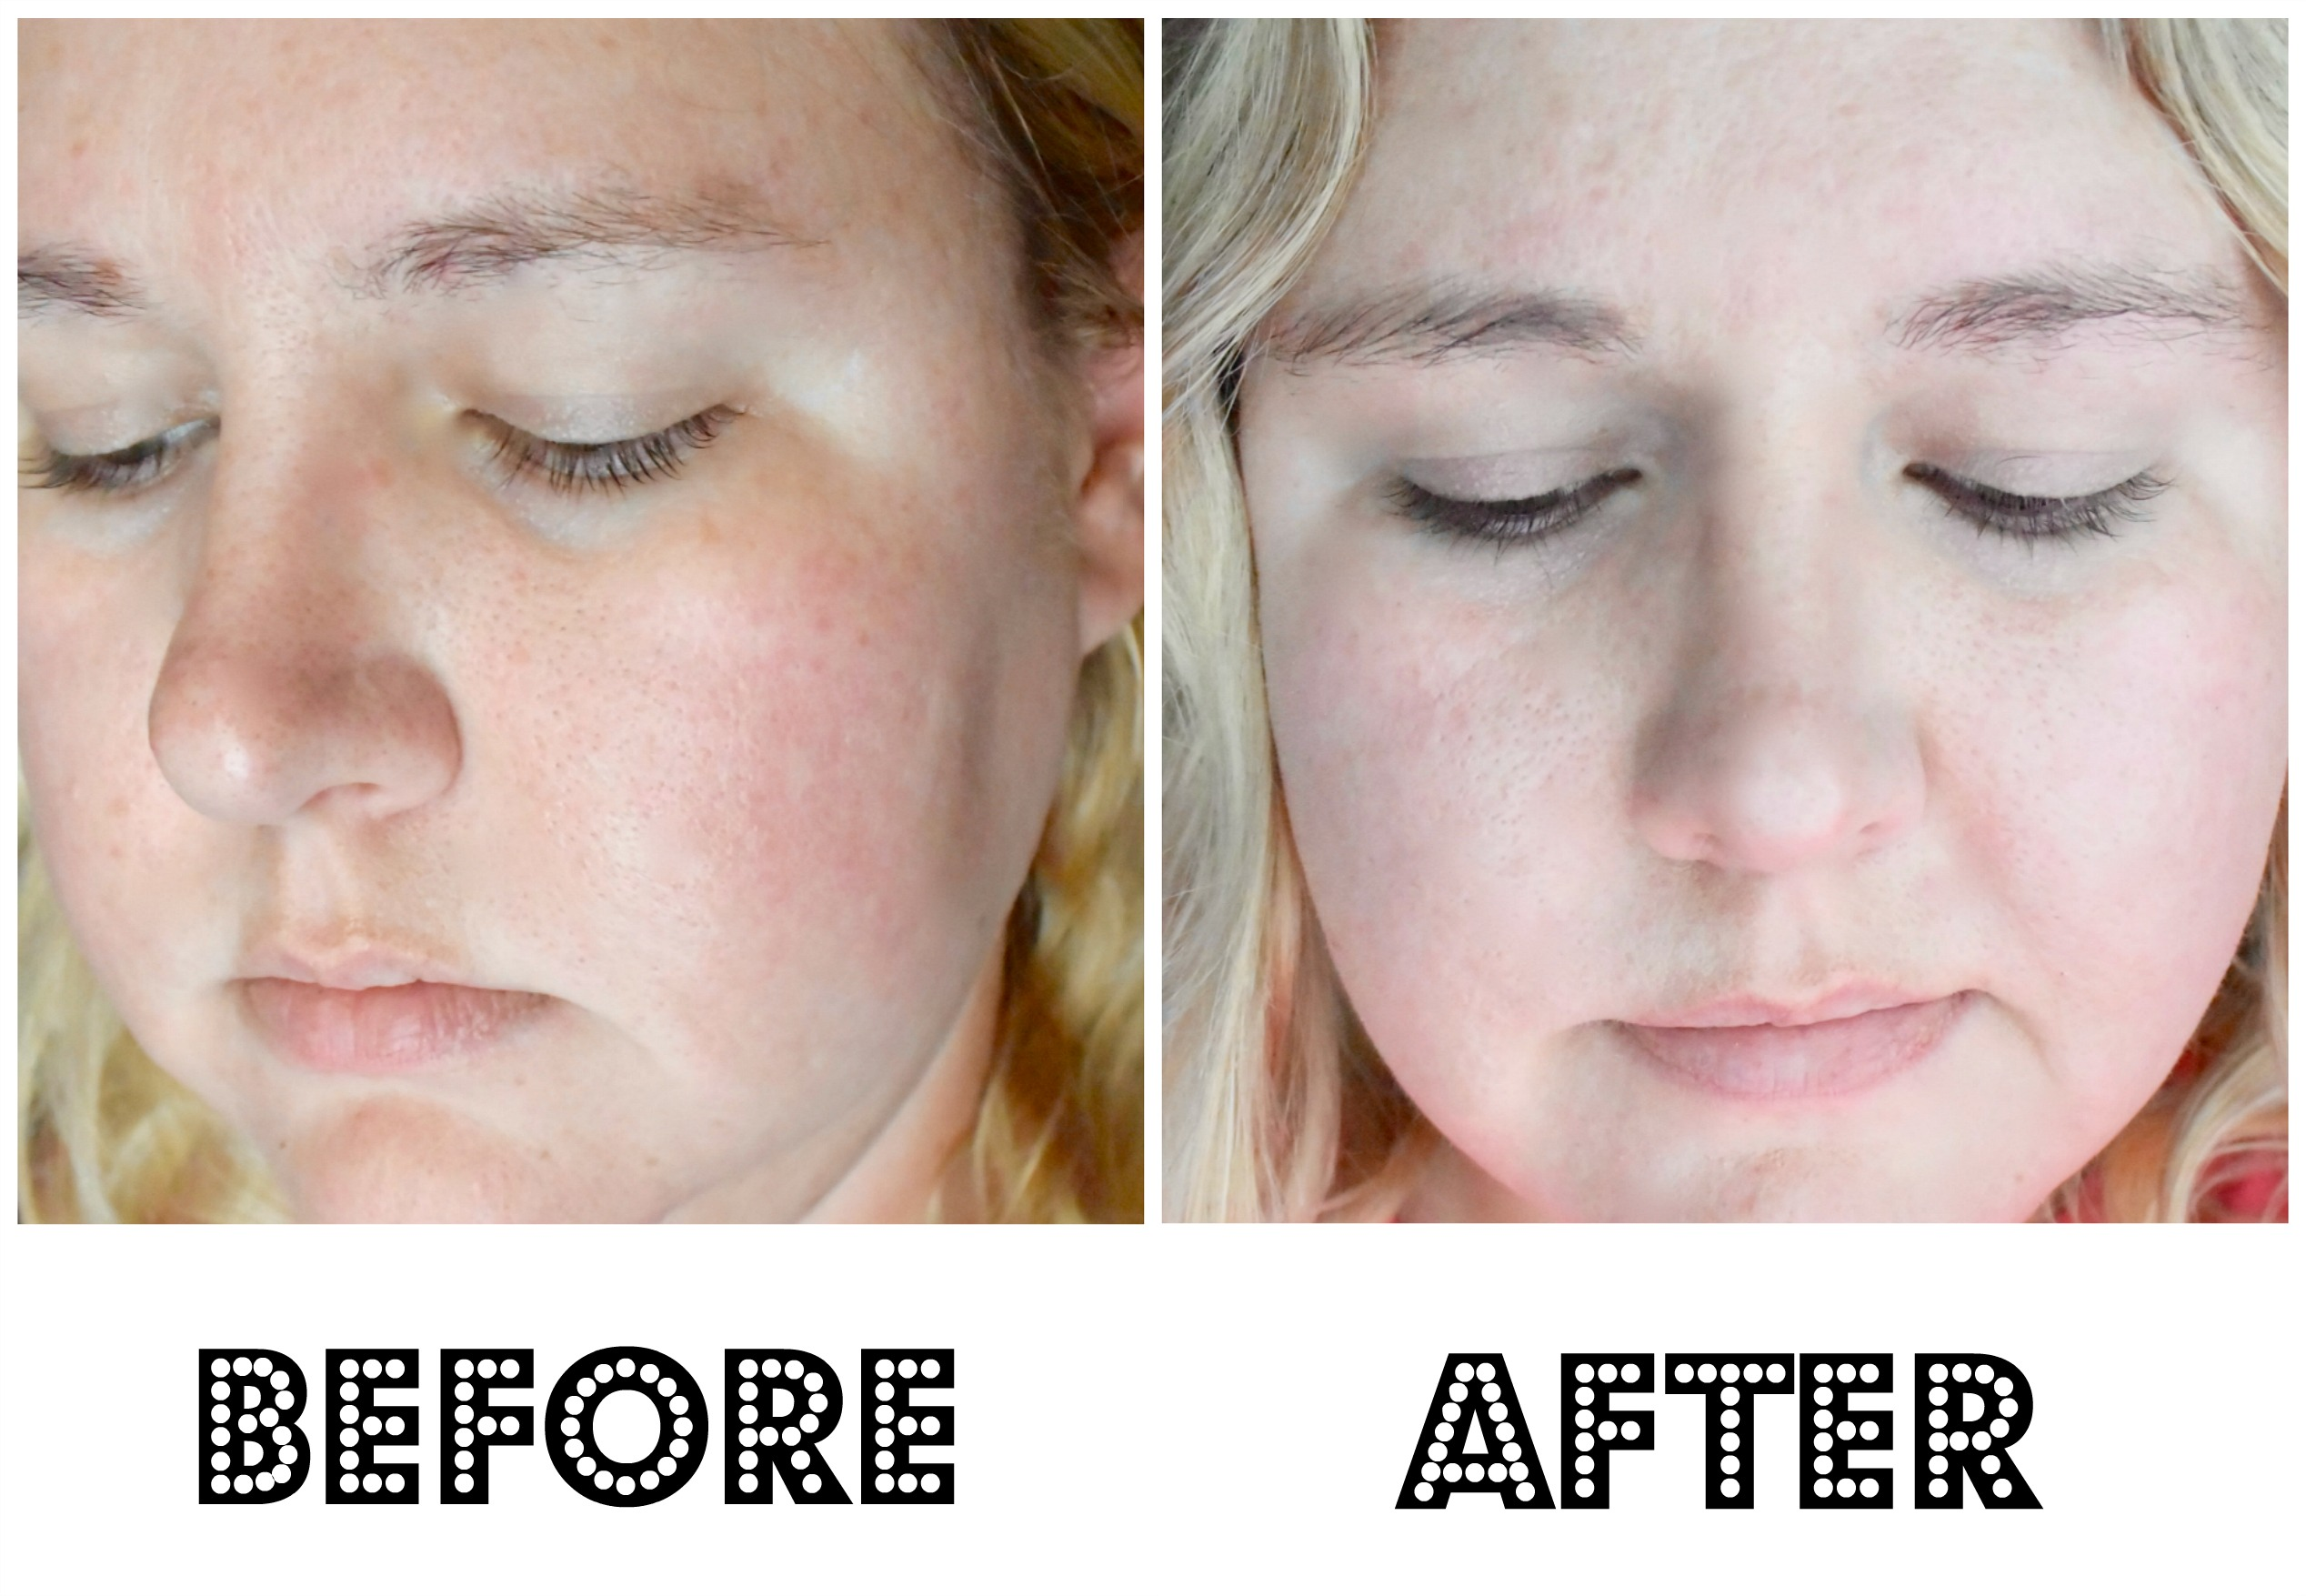 Garnier SkinActive® Clearly Brighter™ Brightening & Smoothing Daily Moisturizer | Before and After Pictures